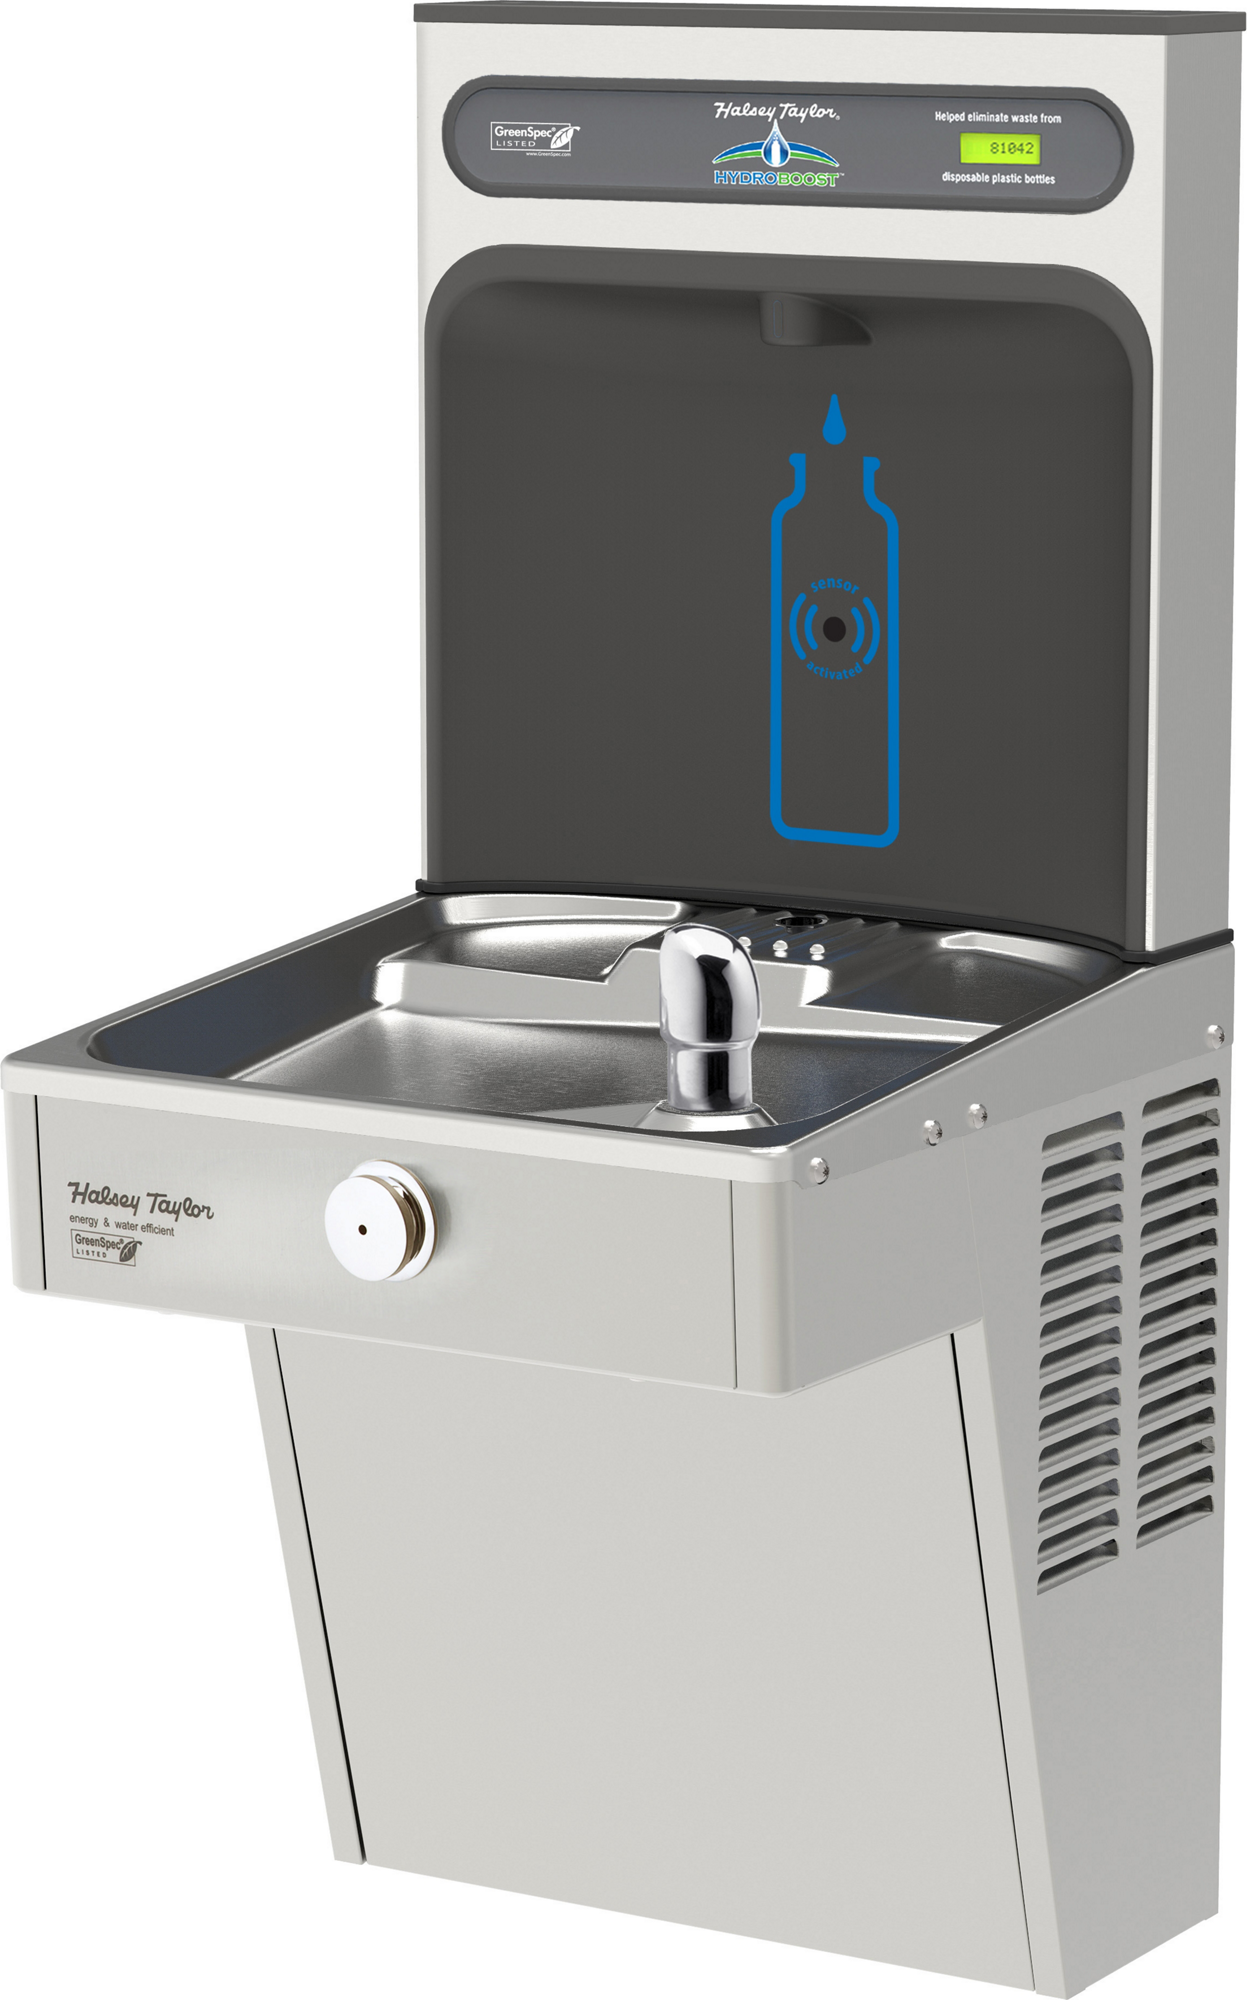 Halsey Taylor HTHB-HVRGRN8-NF | Wall-mount Bottle Filling Station | Filterless, High-efficiency chiller, HVR-style fountain